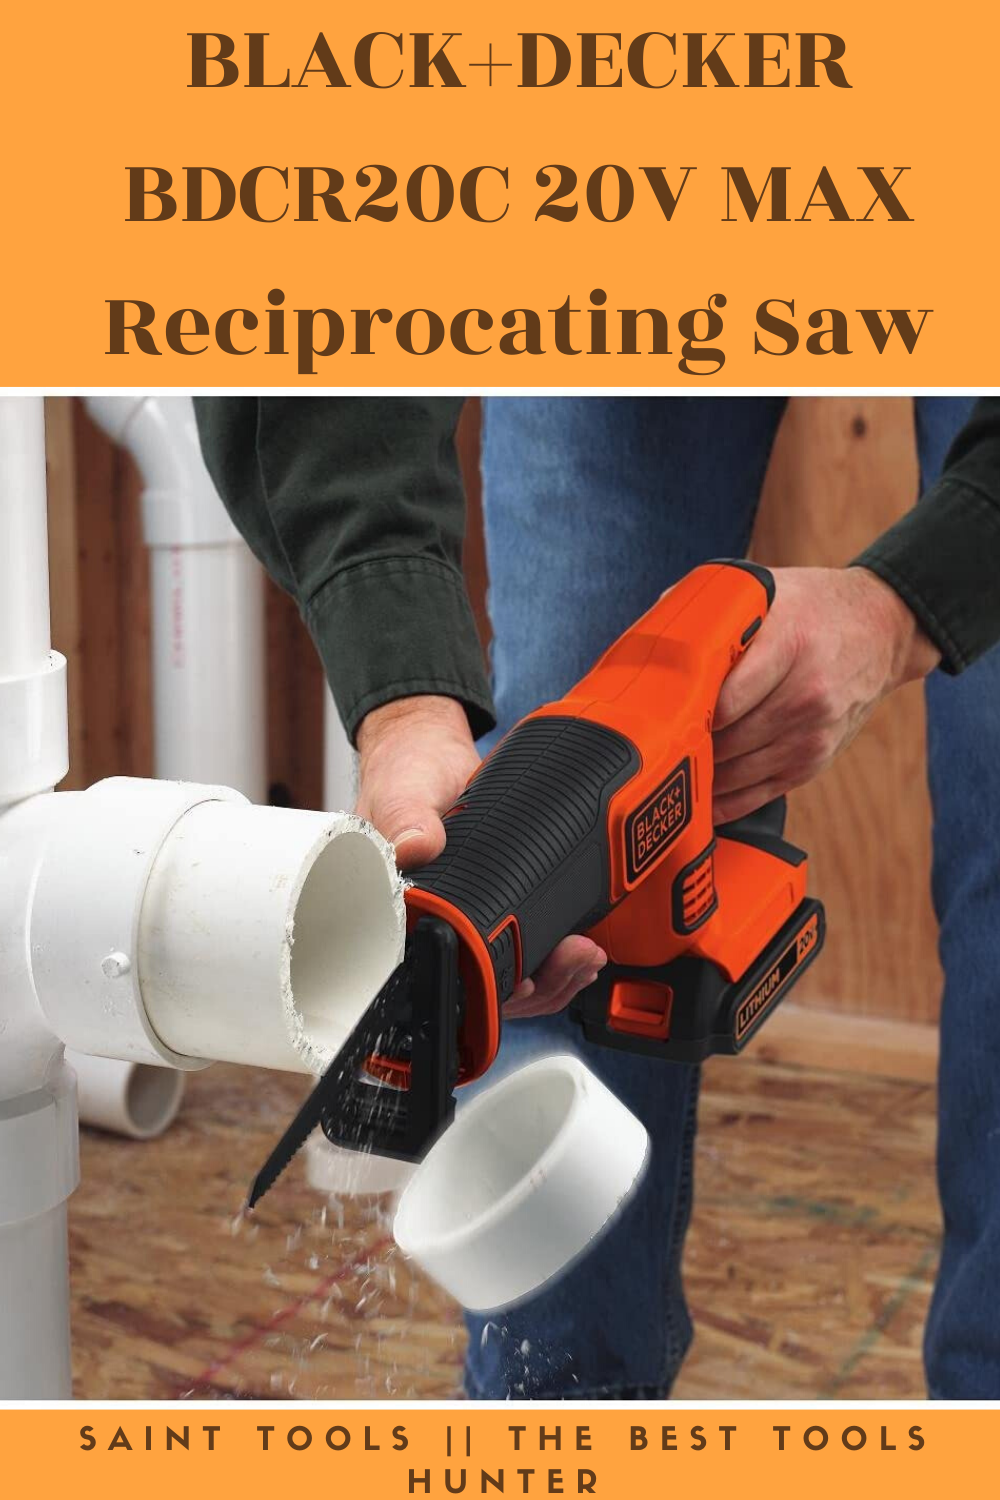 Black Decker Bdcr20b 20v Max Lithium Reciprocating Saw Battery And Charger Not Included Amazo Cordless Reciprocating Saw Reciprocating Saw Black Decker